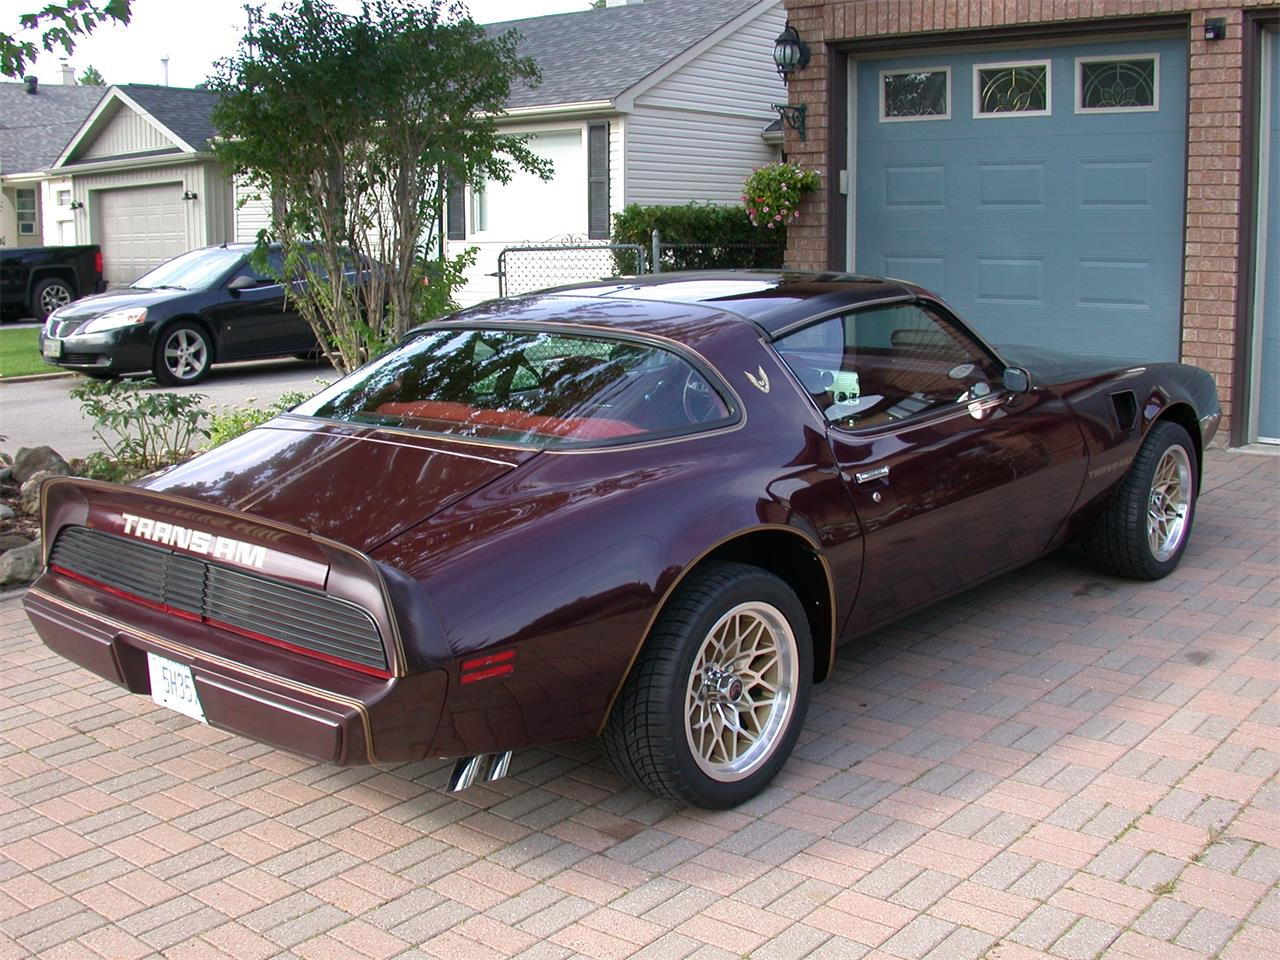 Large Picture of '80 Firebird Trans Am located in Niagara Falls New York - $24,000.00 Offered by a Private Seller - OCWB